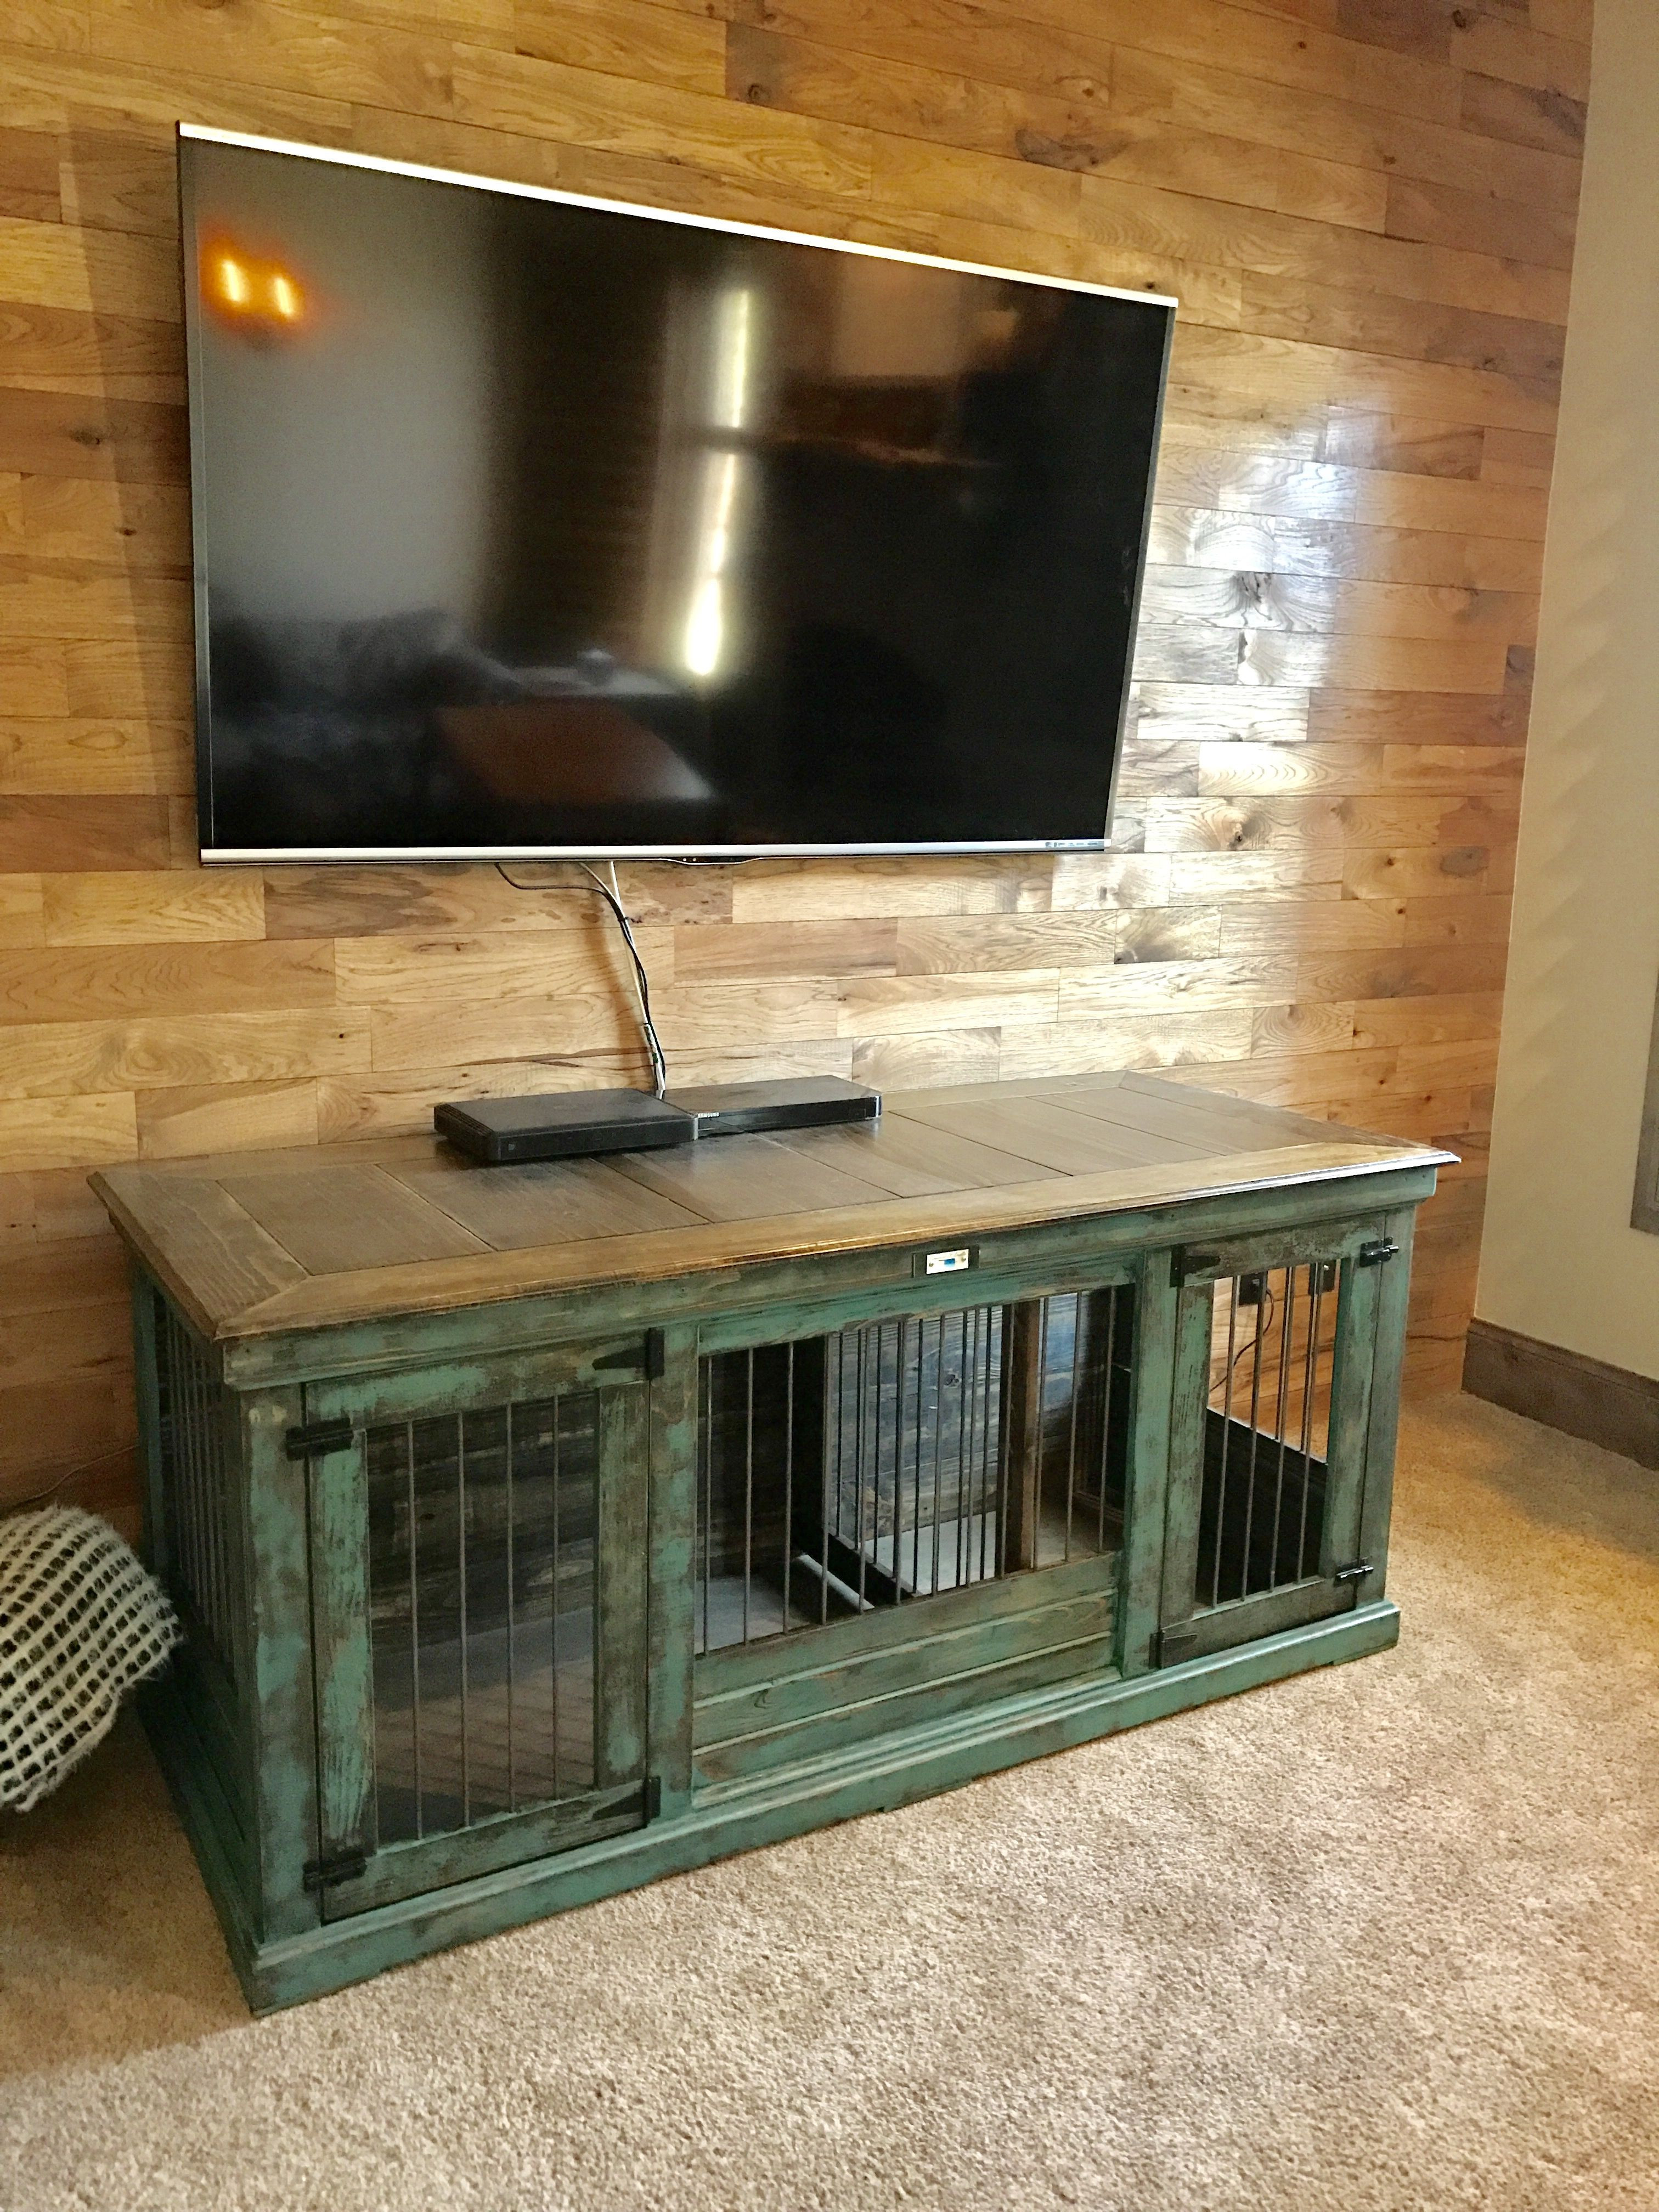 Best ideas about DIY Indoor Dog Kennel . Save or Pin Turquoise distressed double indoor dog kennel Our double Now.